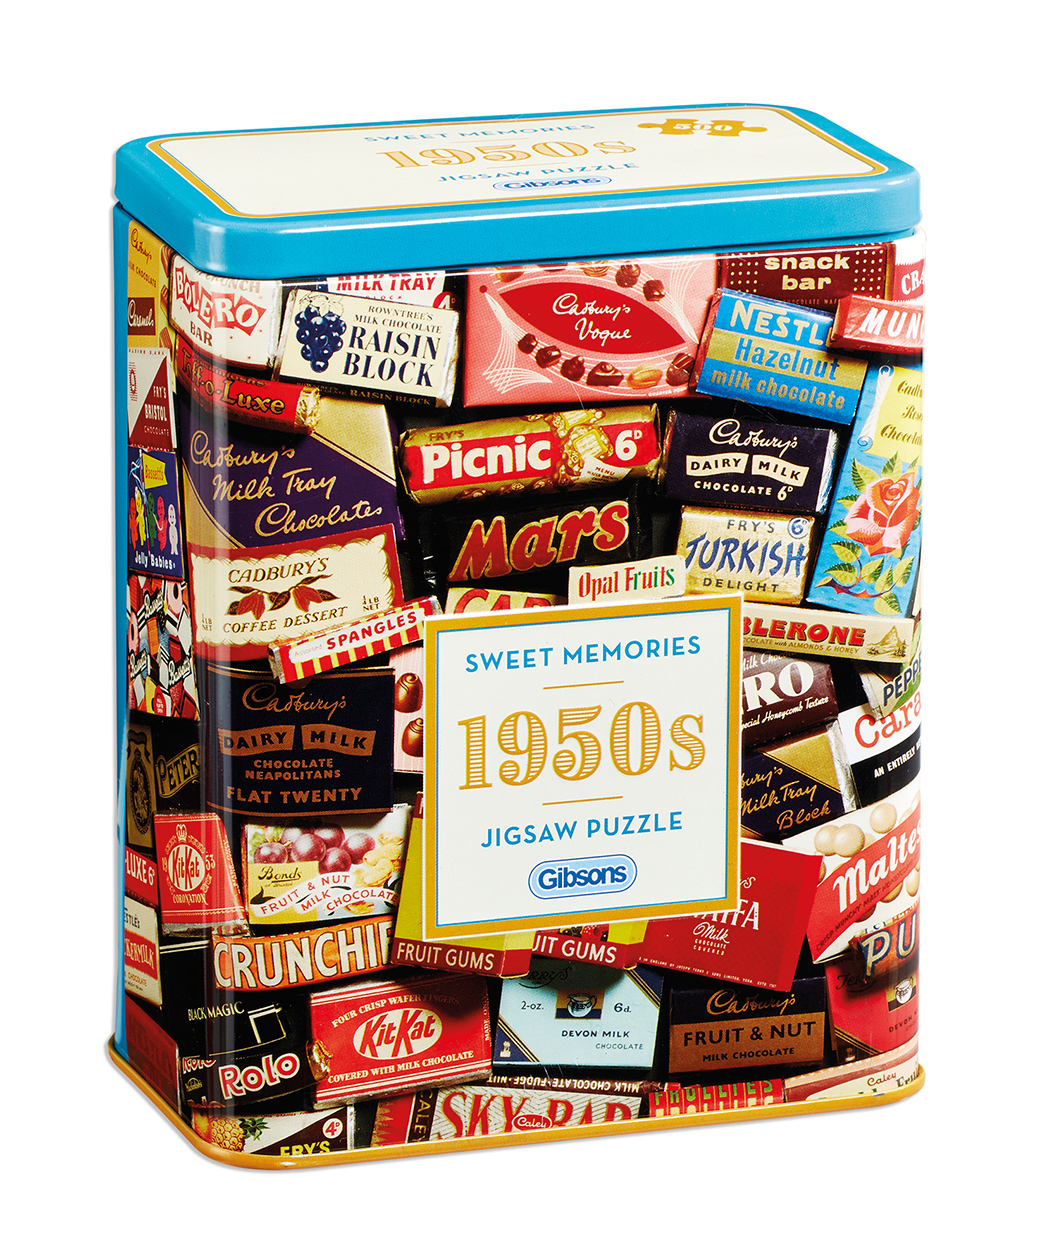 1950s Sweet Memories Gift Tin